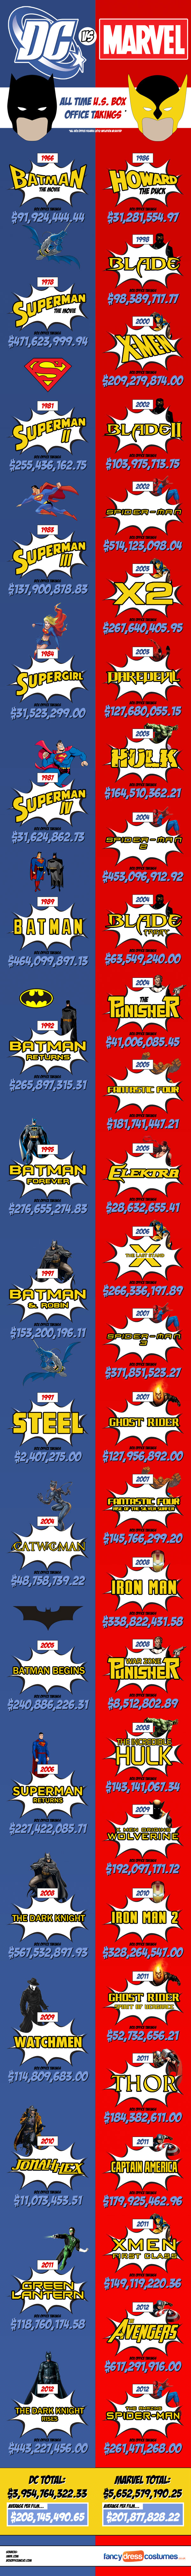 DC vs Marvel Superheroes-Infographic